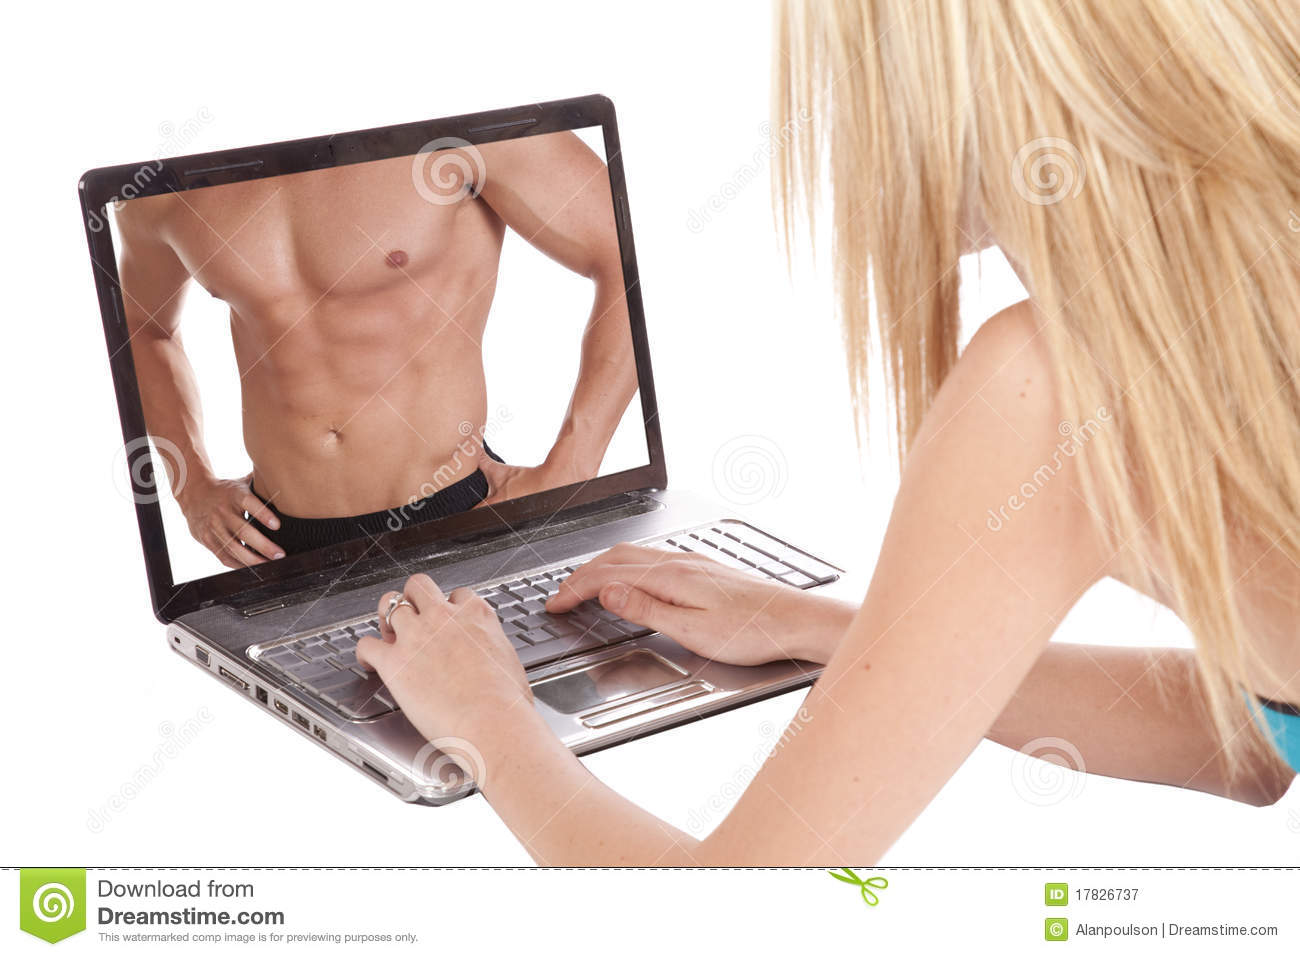 Woman looking at a man in laptop